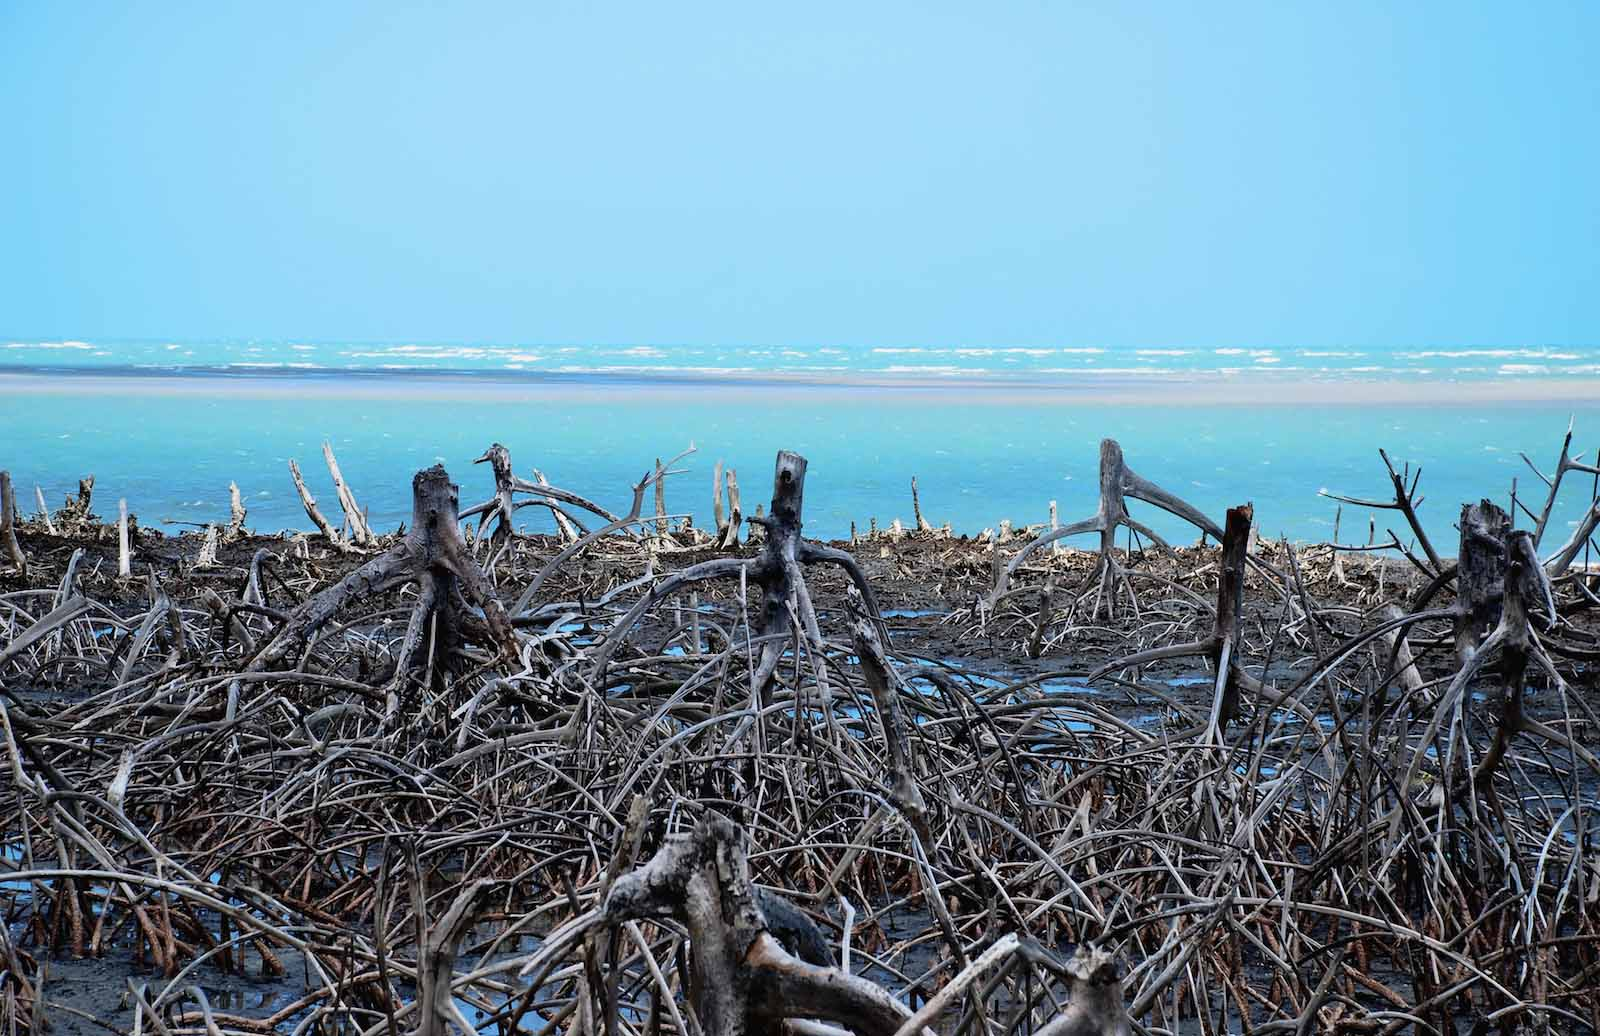 Stock image of a degraded coastal mangrove forest. Image: iStock/Getty Images